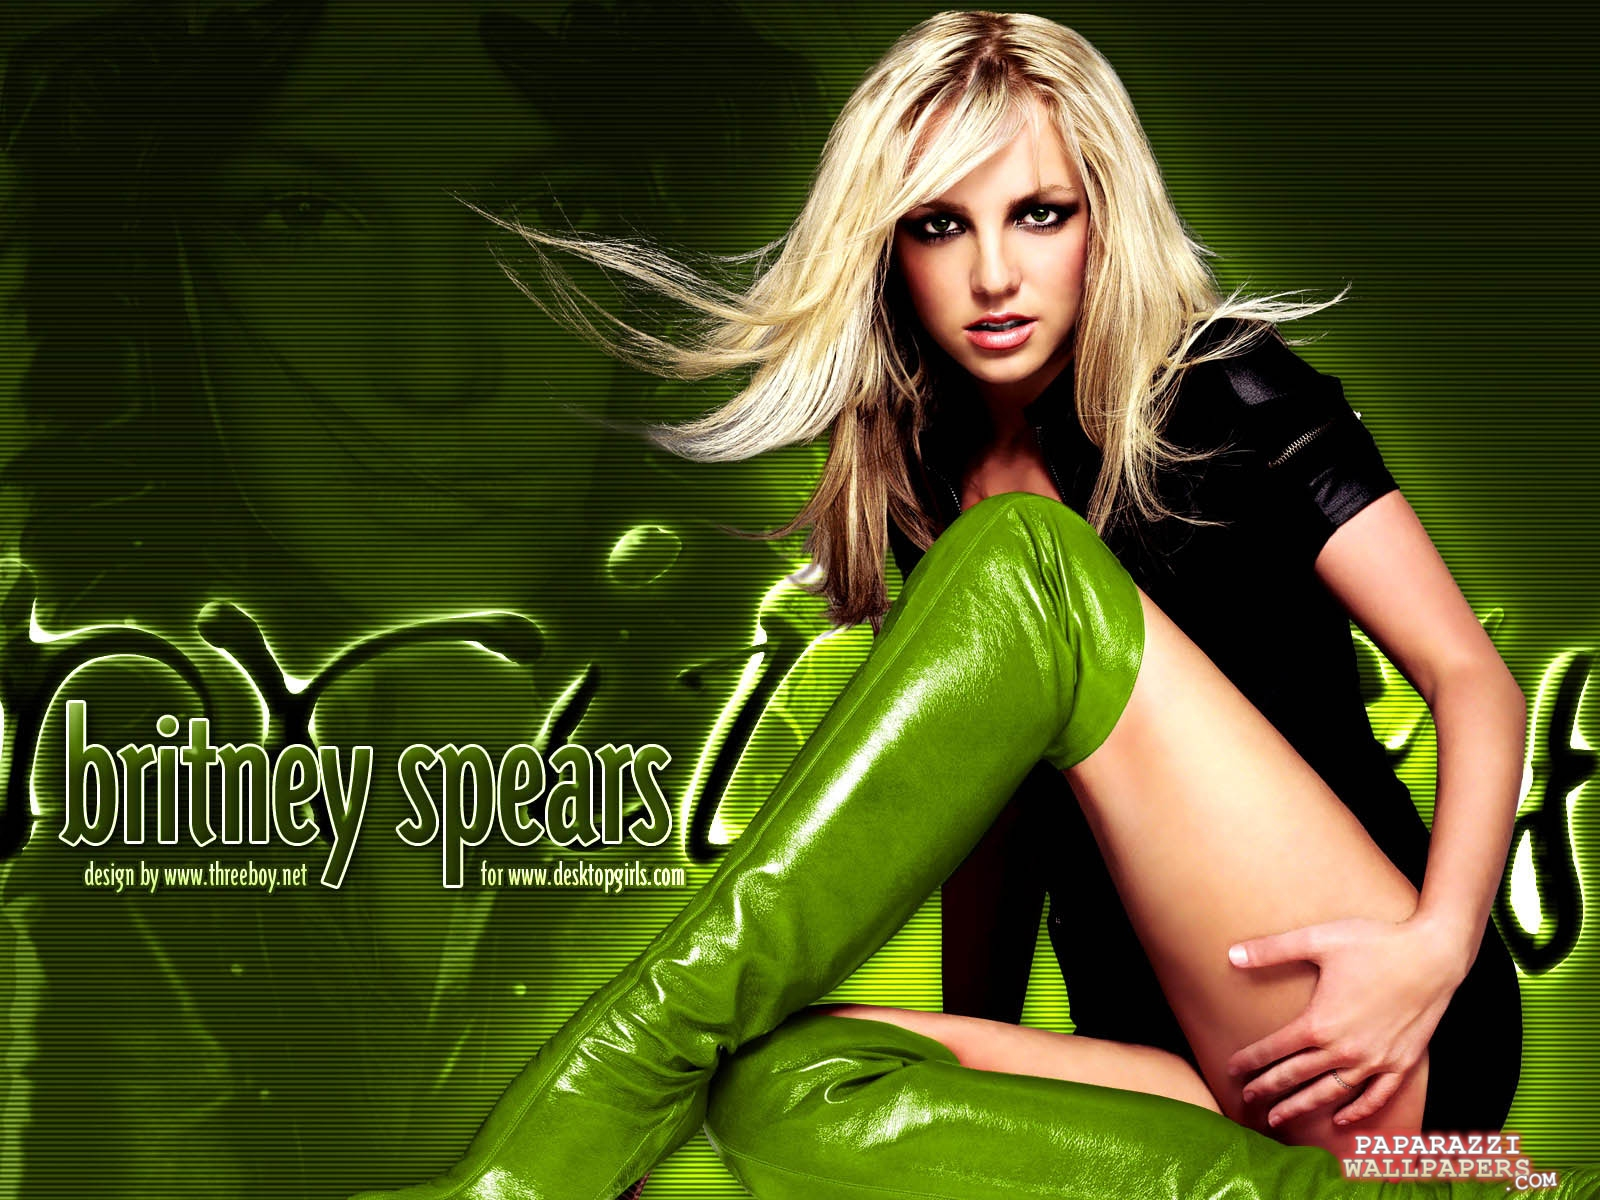 britney spears wallpapers 003